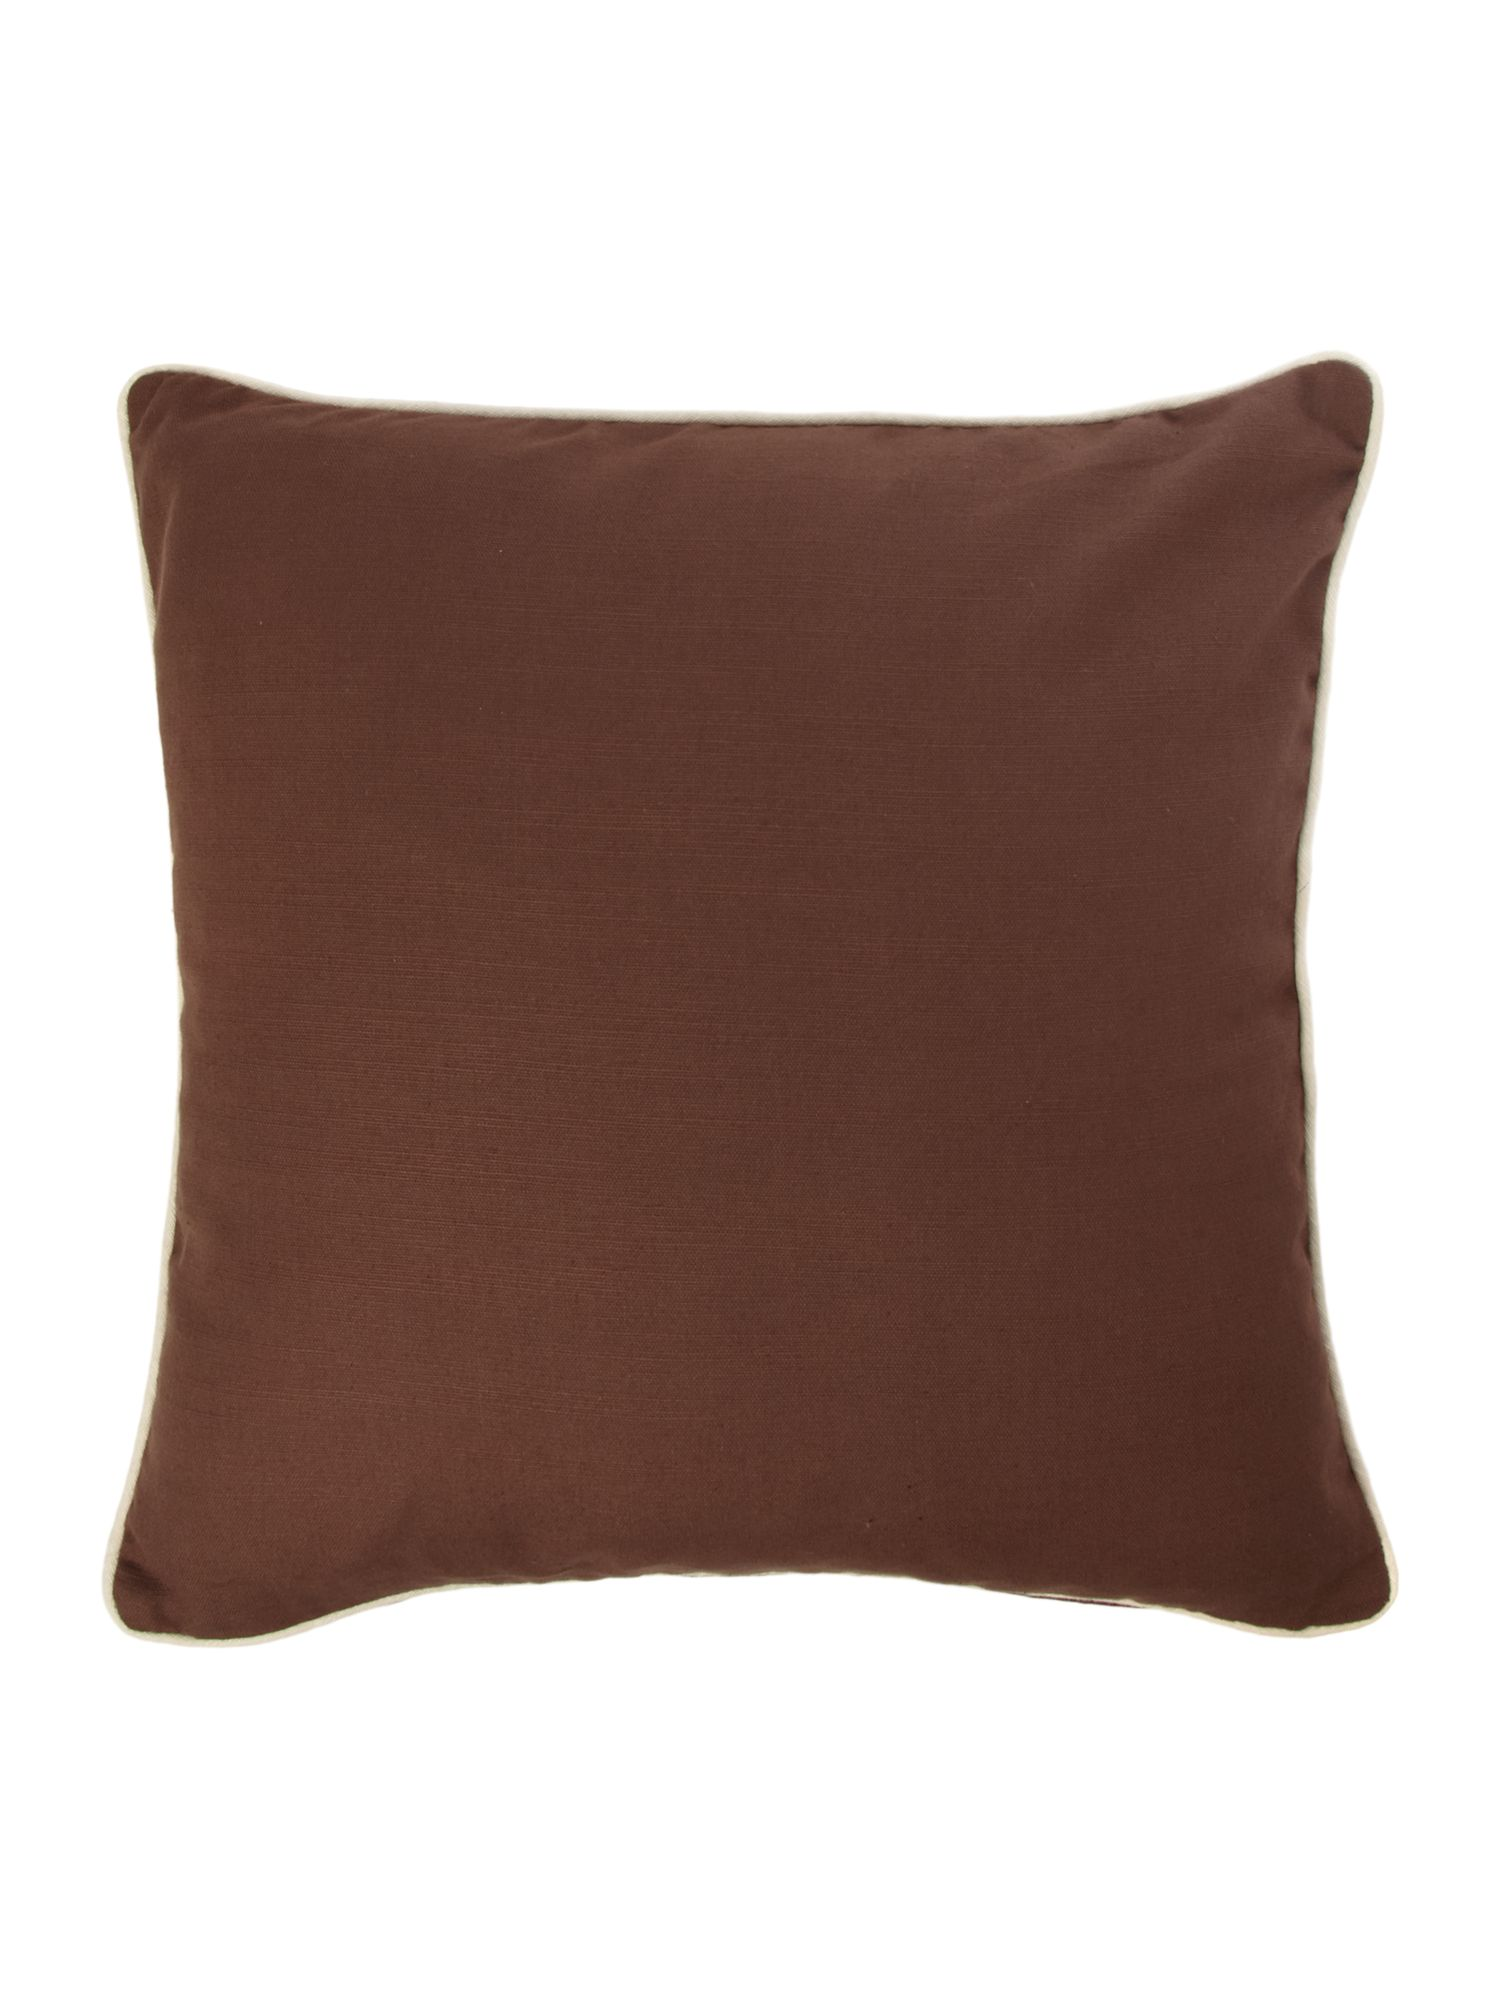 Brown cotton cushion with contrast piping